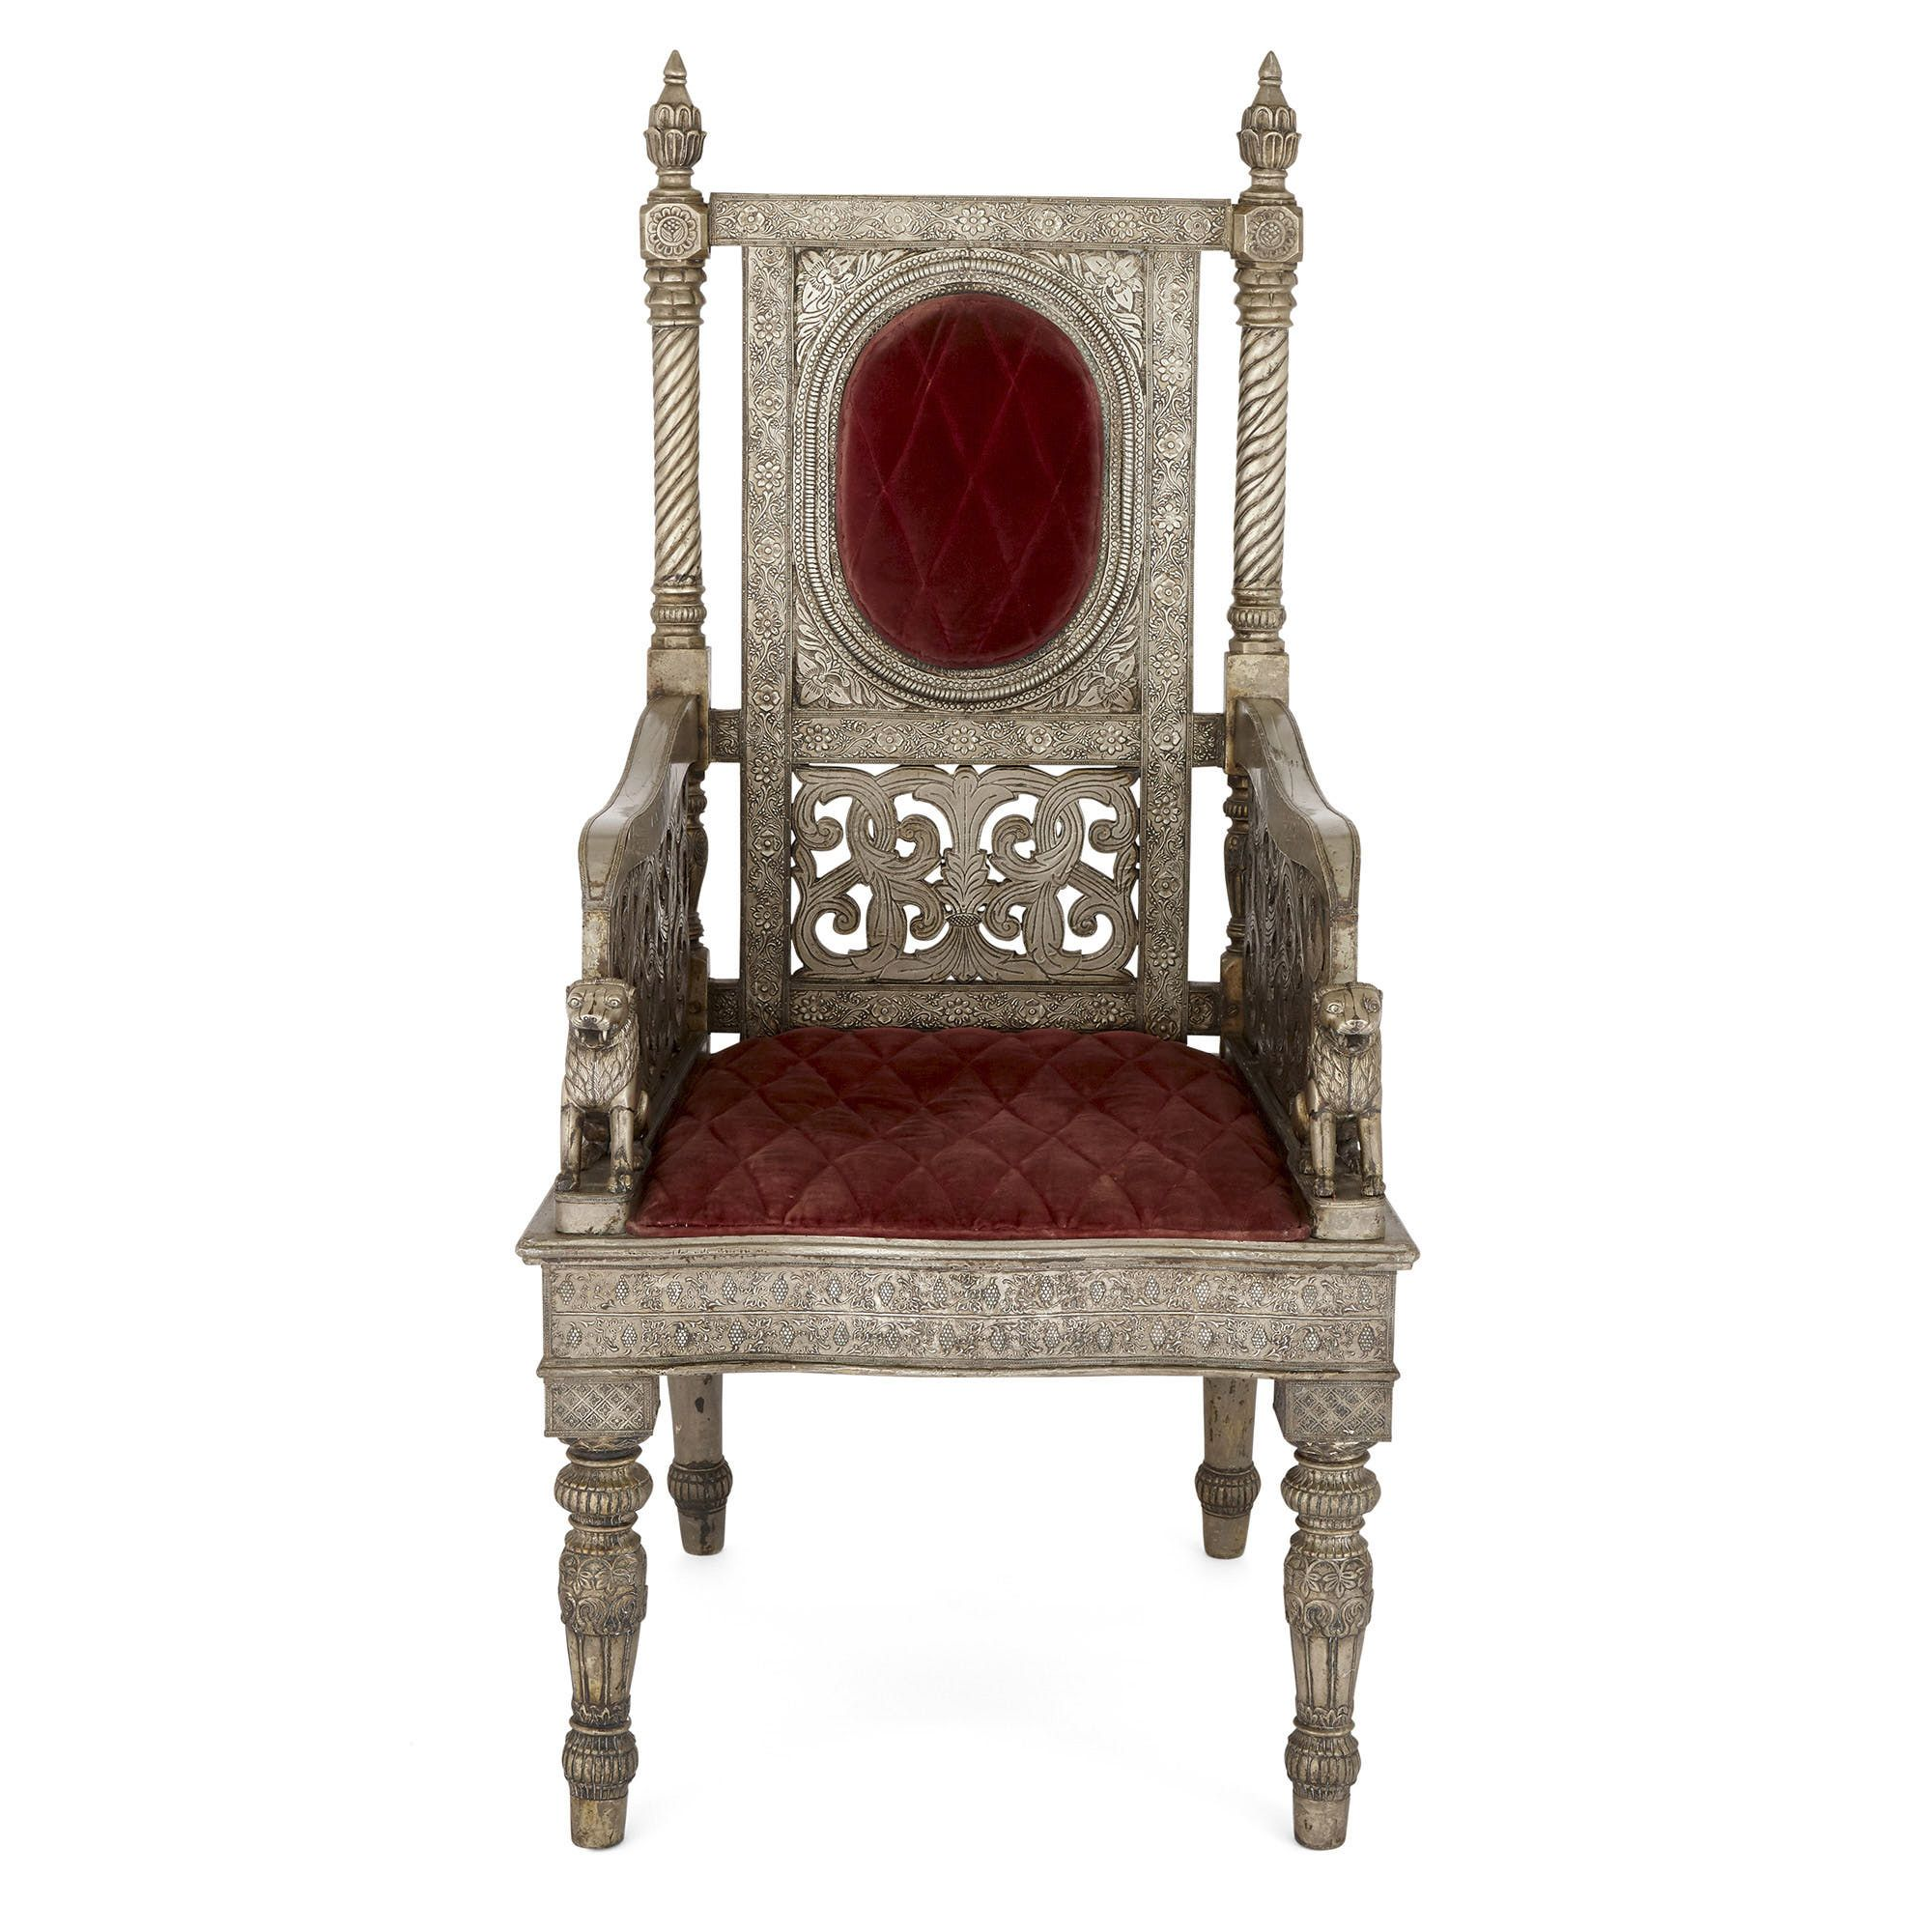 Indian Silvered Metal Throne Chair With Velvet Upholstery Mayfair Gallery